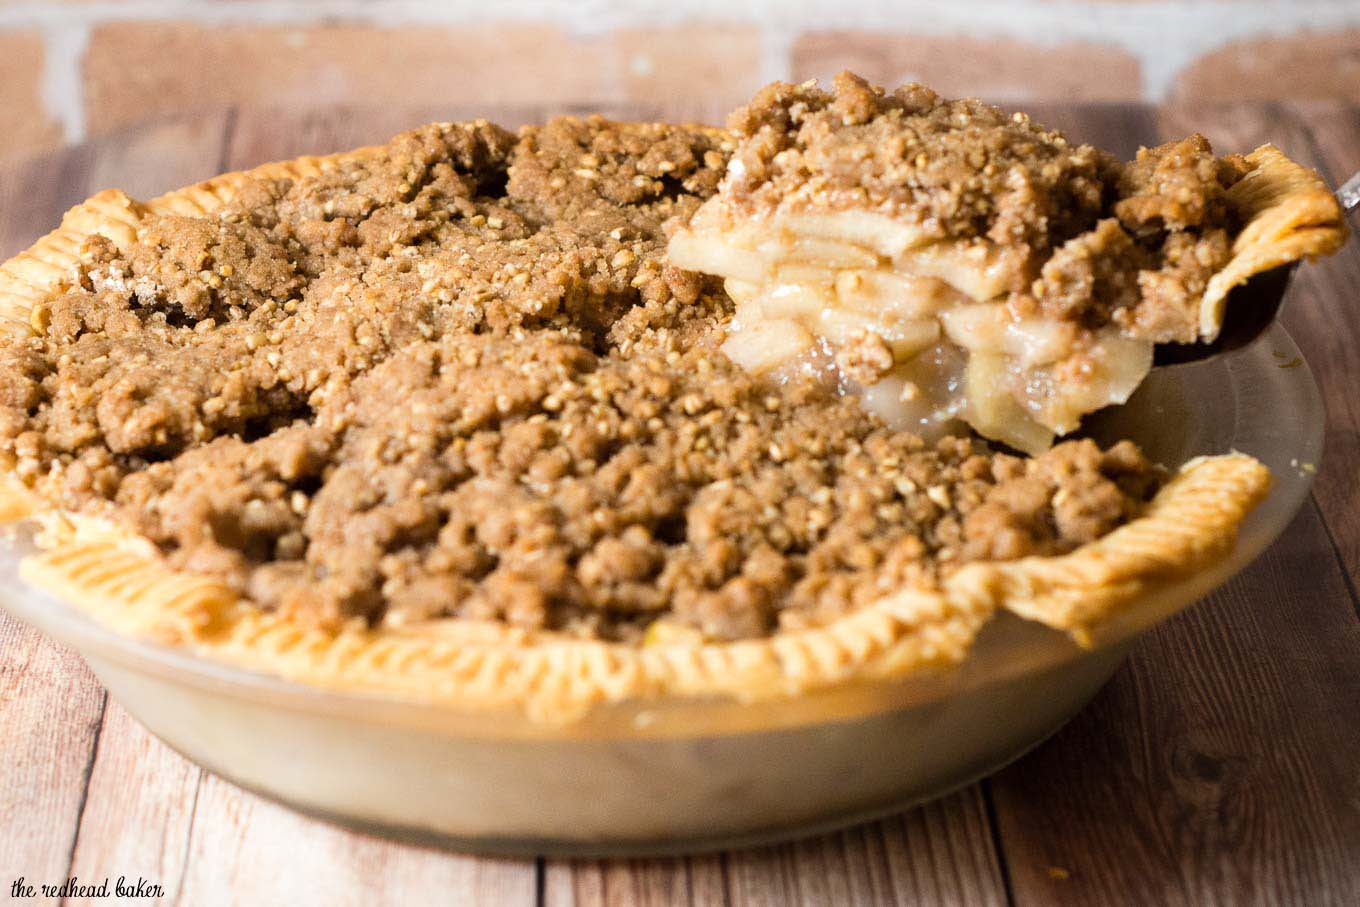 Classic apple pie gets a twist with a cinnamon-spiced oat crumb topping that adds texture and flavor. It's the perfect dessert for any fall occasion!#AppleWeek